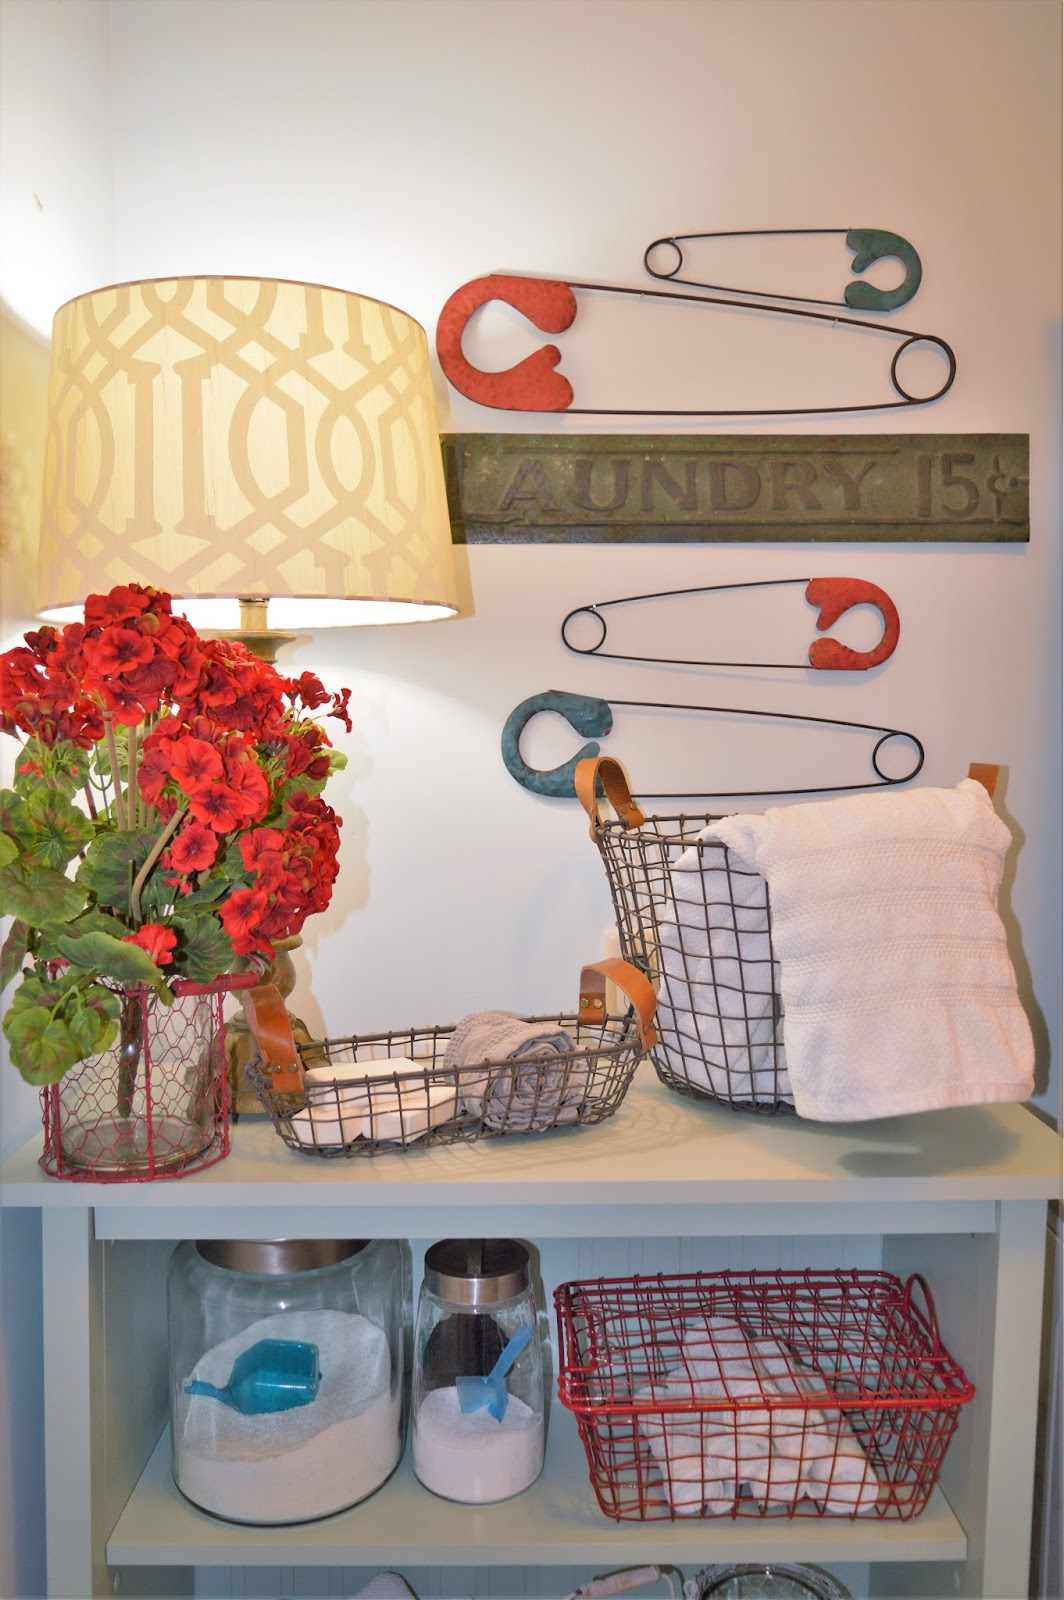 Nothing says laundry room decor more than our take on the vintage safety pins we have created these metal pins in 2 fun color finishes that really bring a